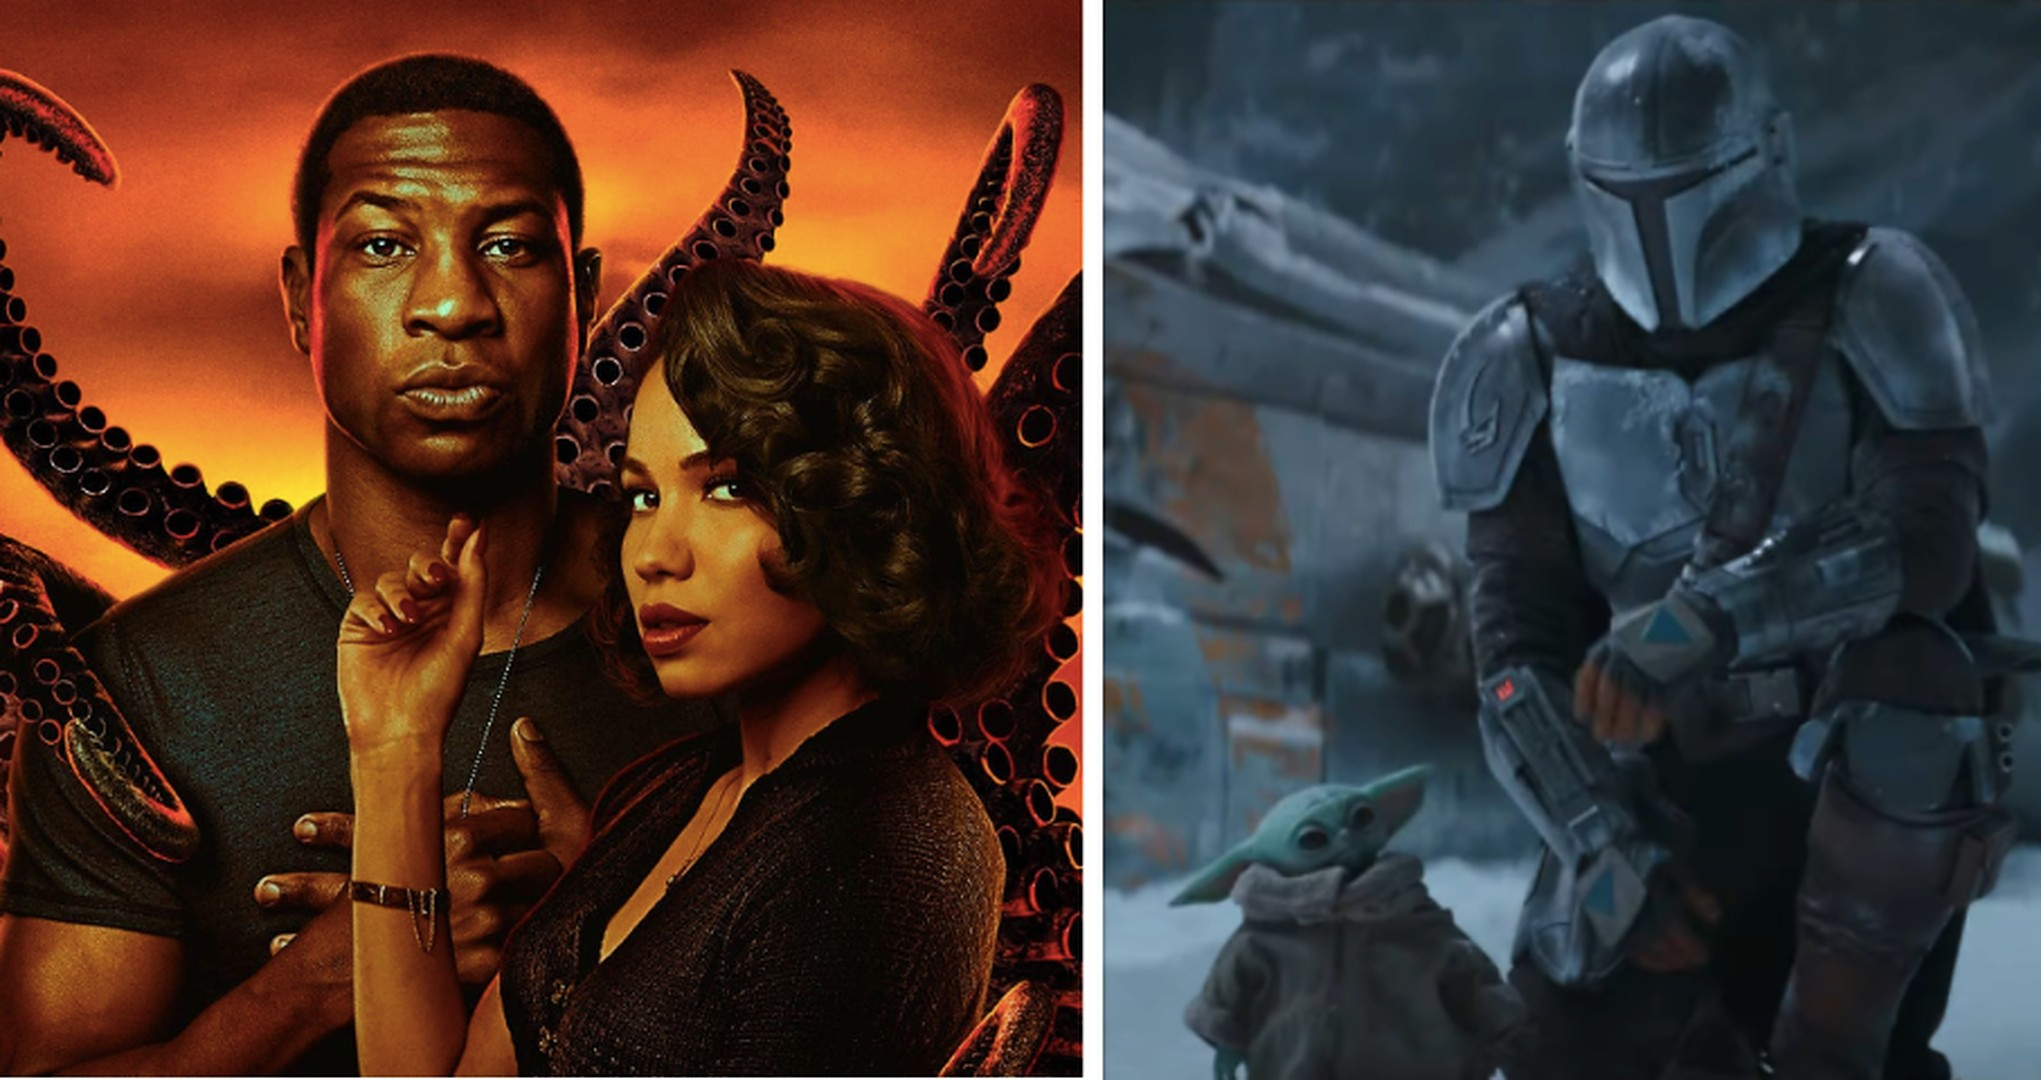 2021 Golden Globes: 'Lovecraft Country' & 'The Mandalorian' earn best series nominations